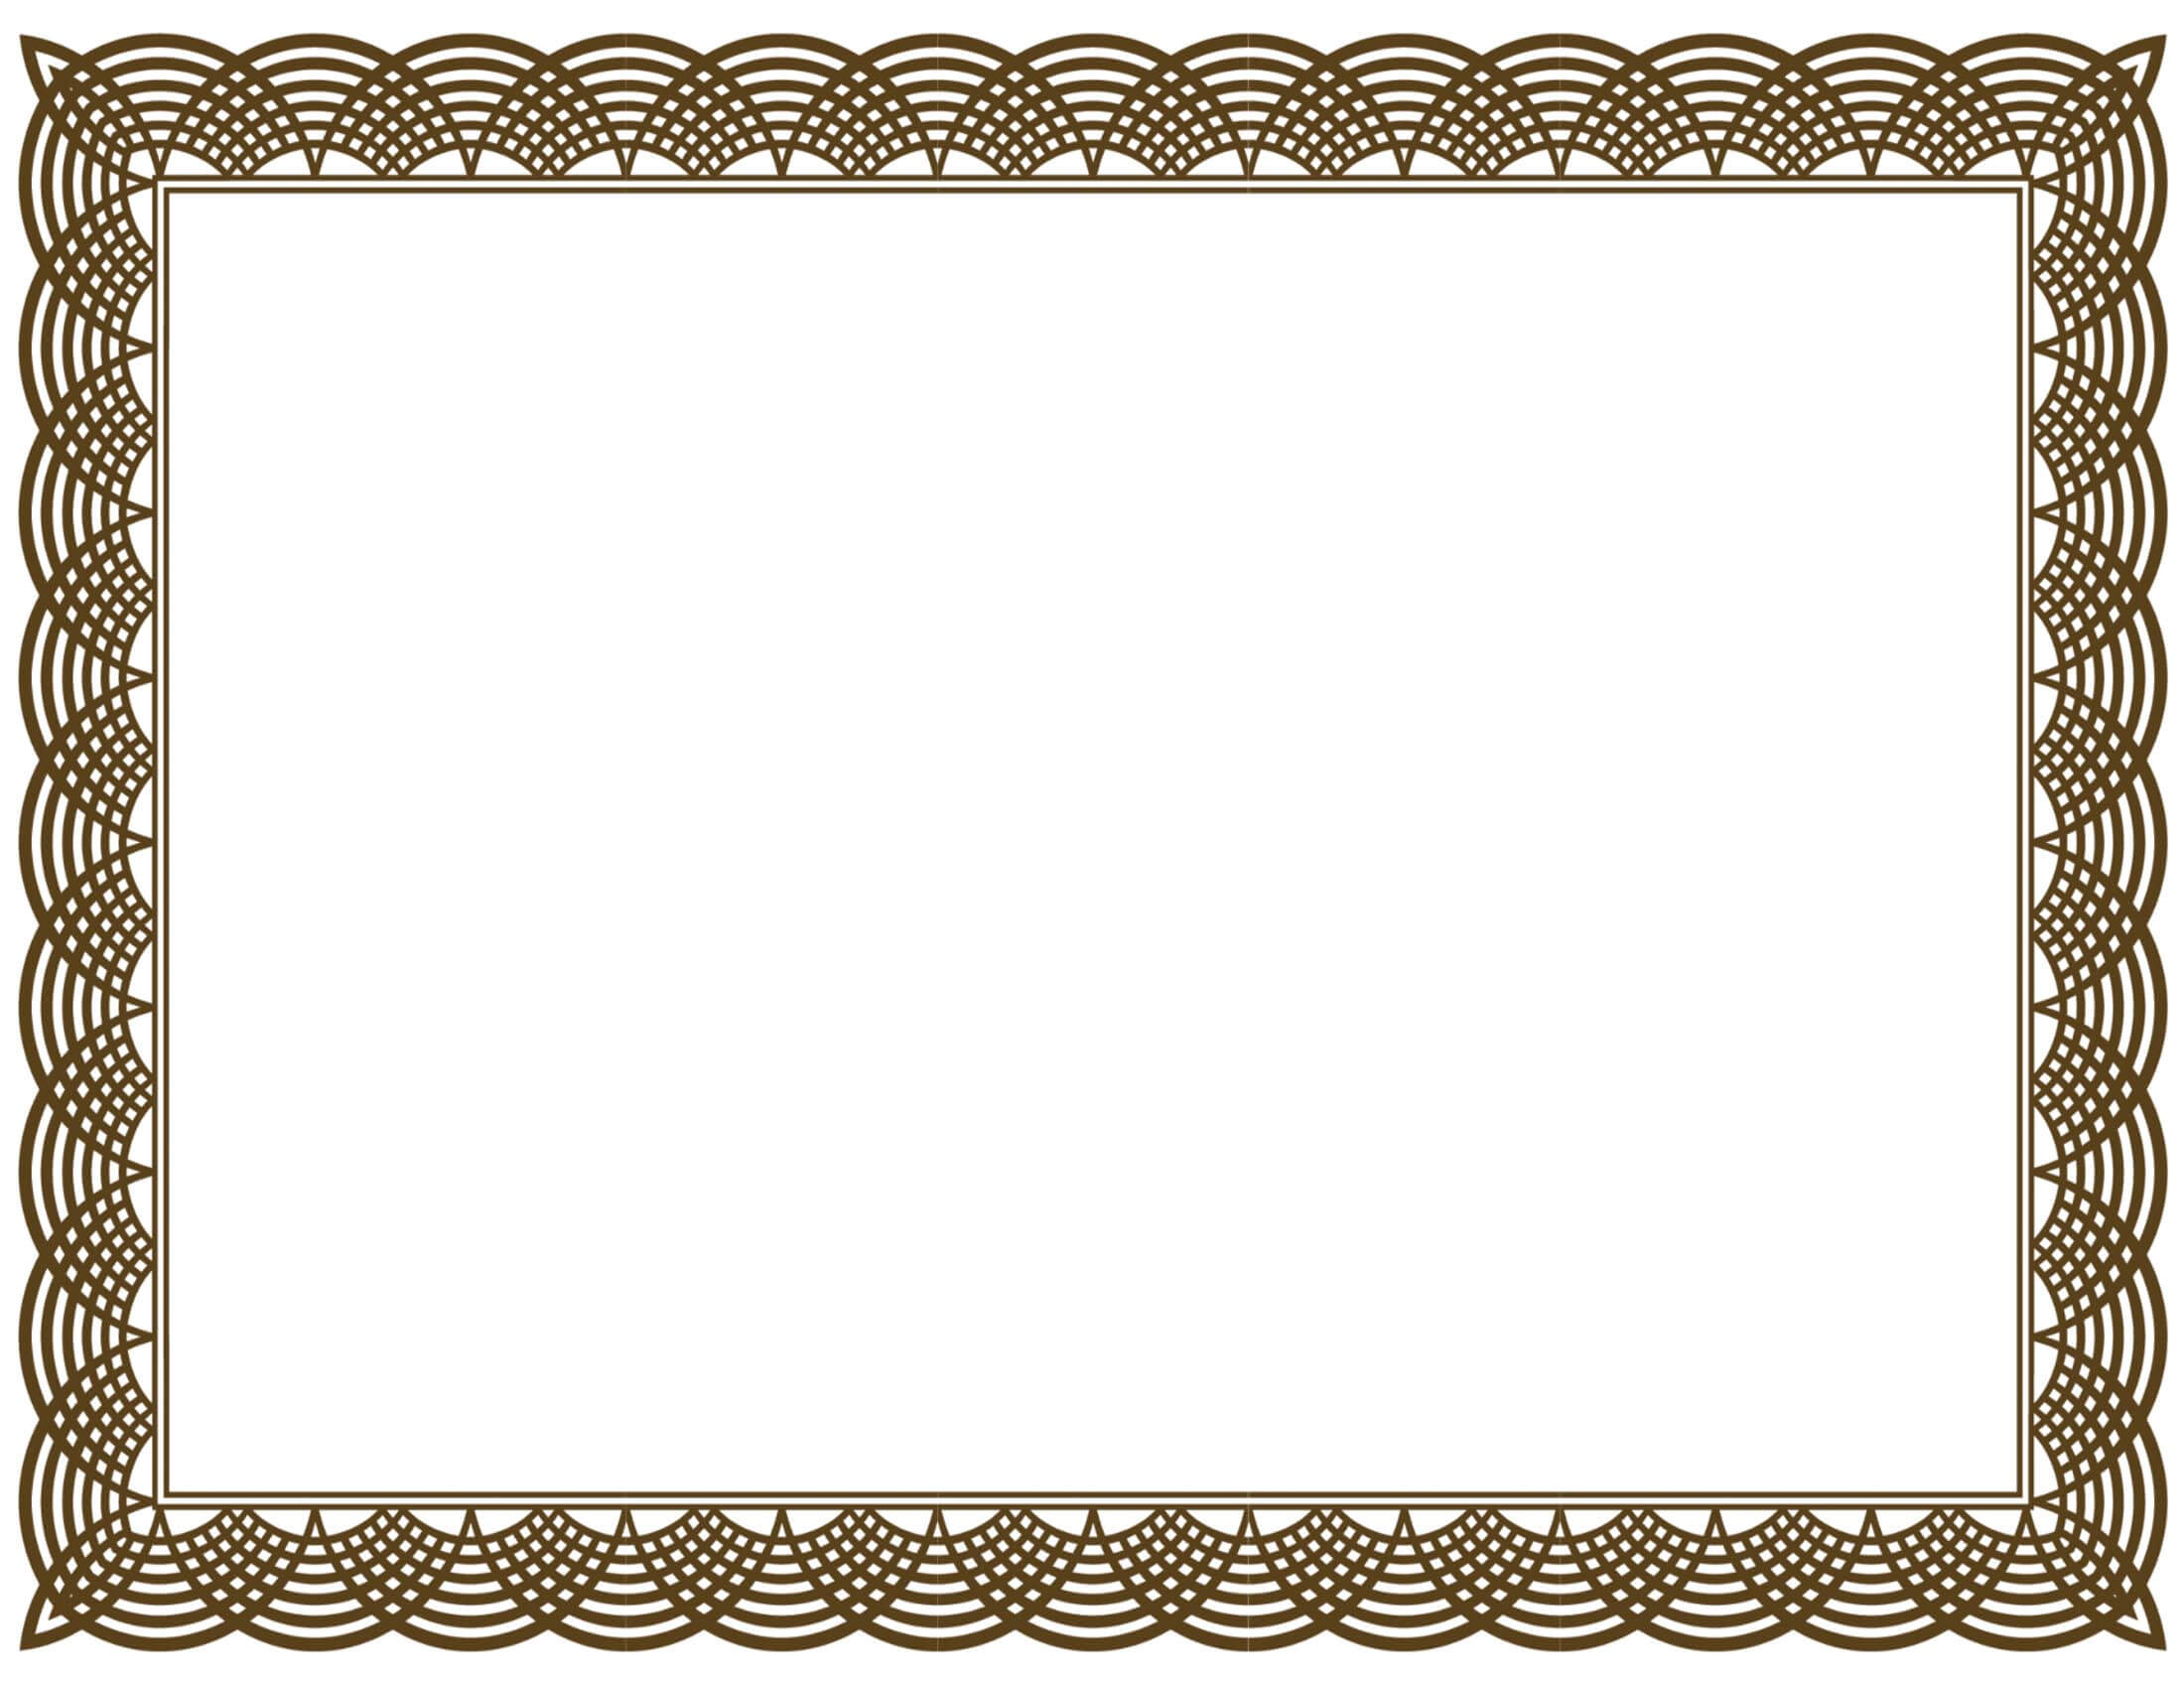 Free Certificate Border, Download Free Clip Art, Free Clip Throughout Free Printable Certificate Border Templates